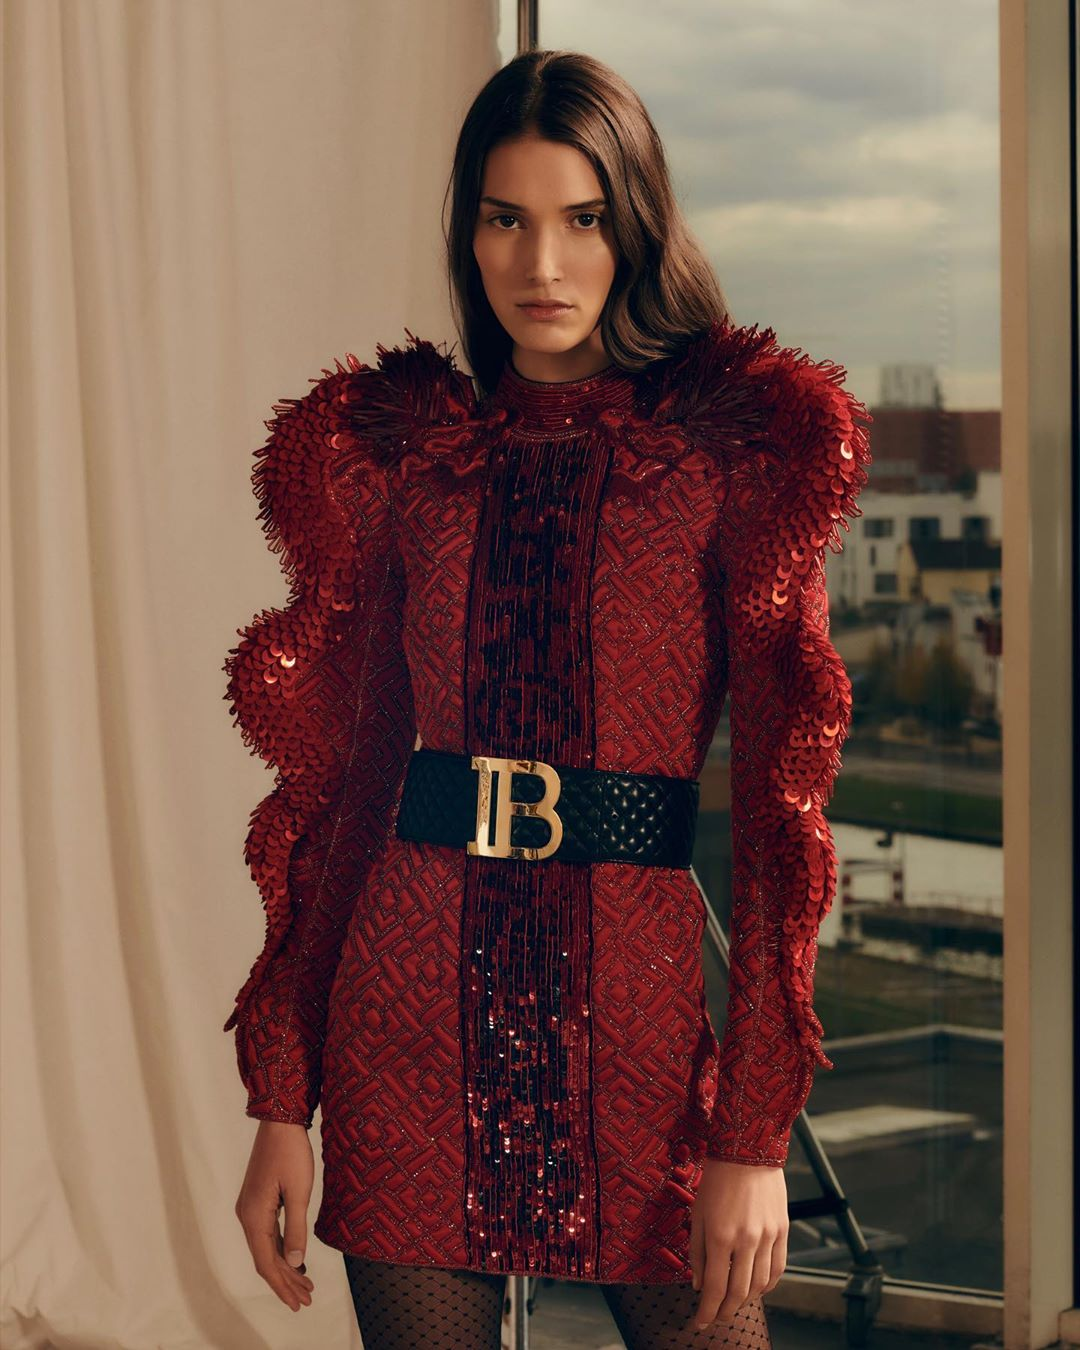 Balmain Red Dress from the Pre-Fall 2019 Balmain Army Collection